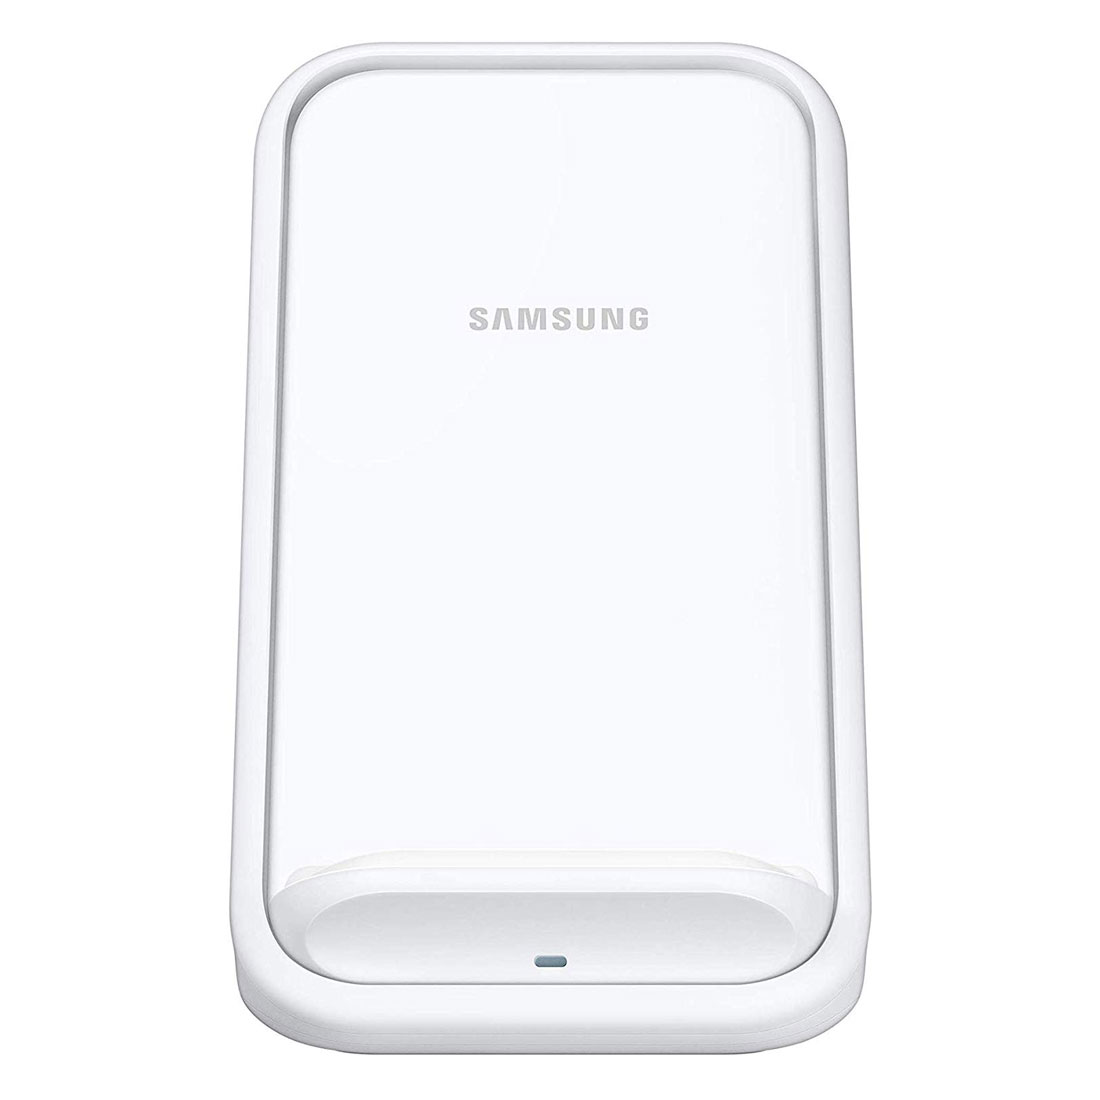 Samsung Wireless Fast Charging Stand w/ Fan Cooling (15W, EP-N5200TWEGAU) - White